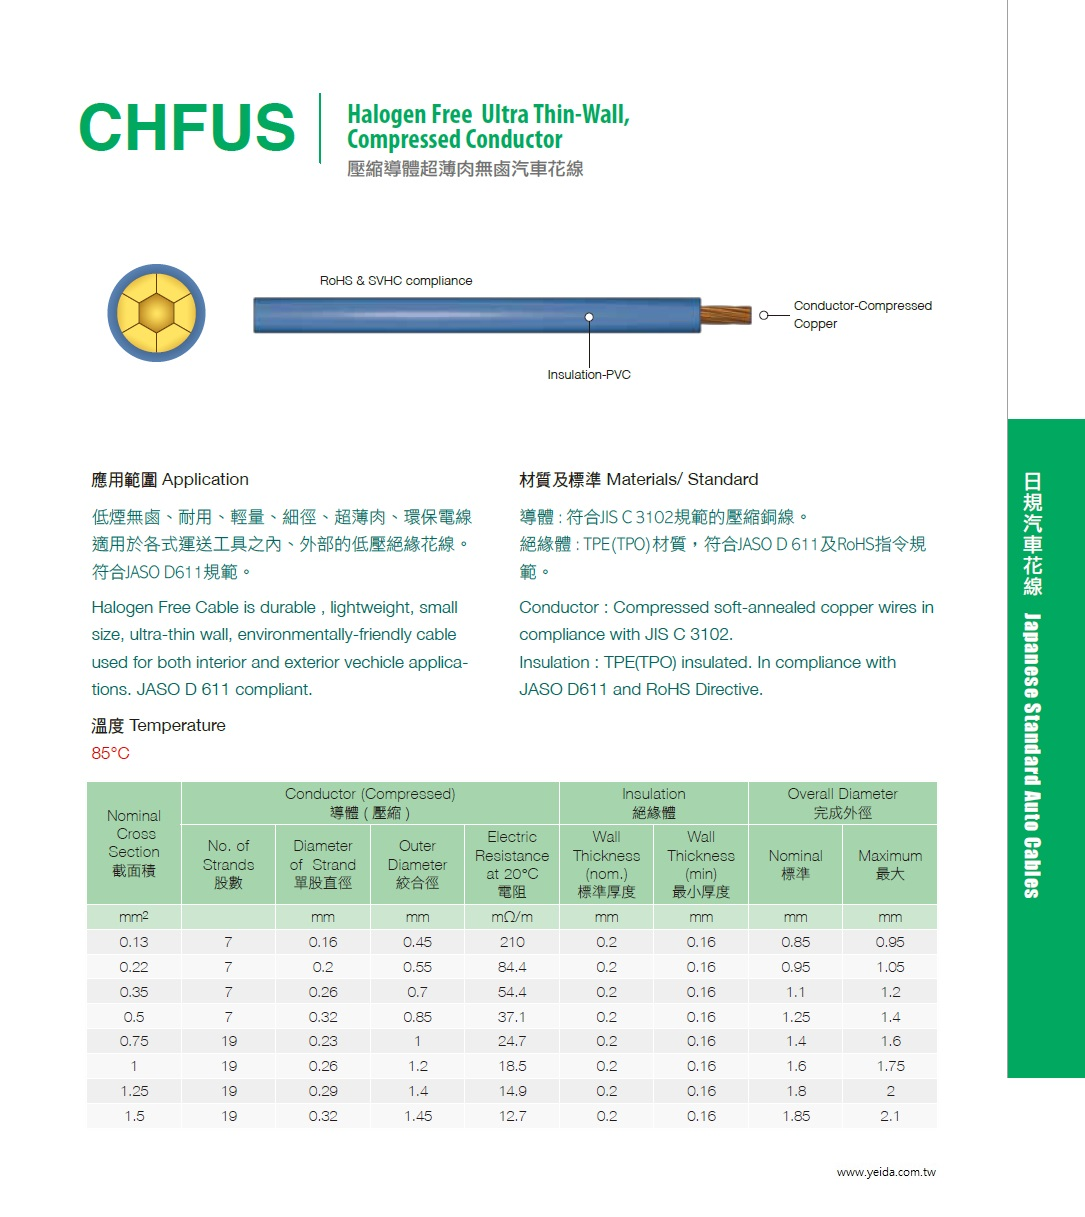 CHFUS Halogen Free Ultra Thin-Wall TPE(TPO), Compressed Conductor JIS C 3102 符合JASO D 611及RoHS規範, 壓縮導體超薄肉無鹵 TPE 汽車花線產品圖